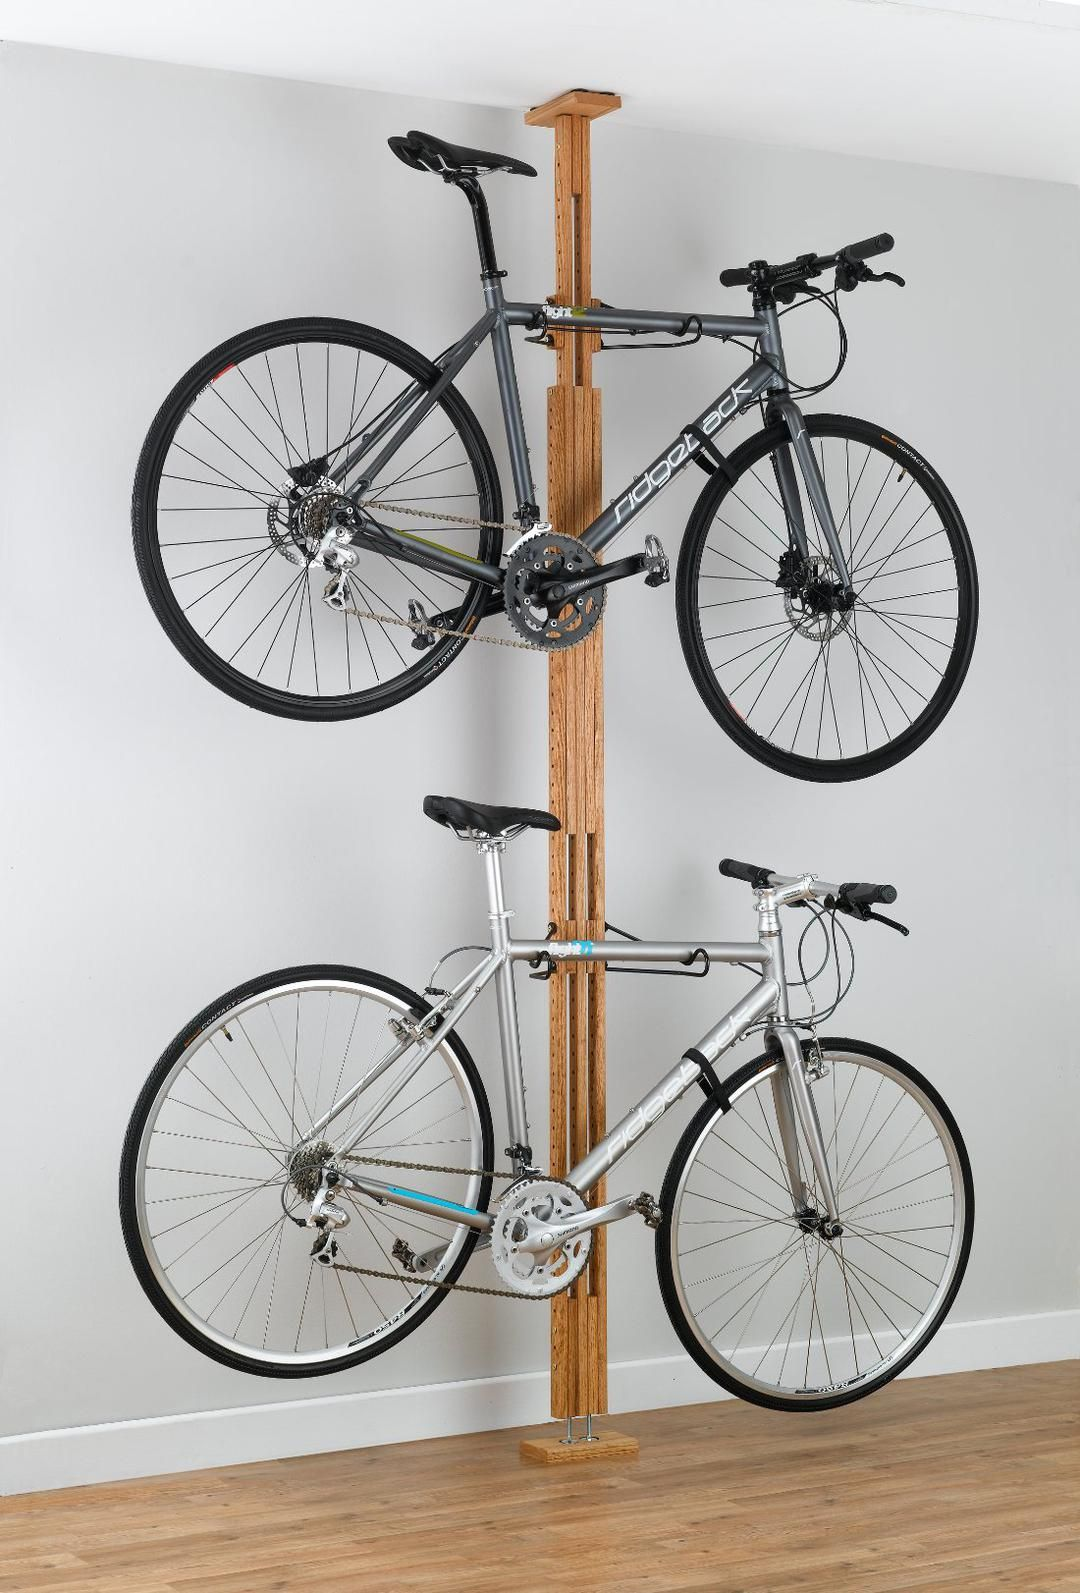 Bike Storage Racks, Bike Lifts, Family Bicycle Racks, Canoe U0026 Kayak Hoists,